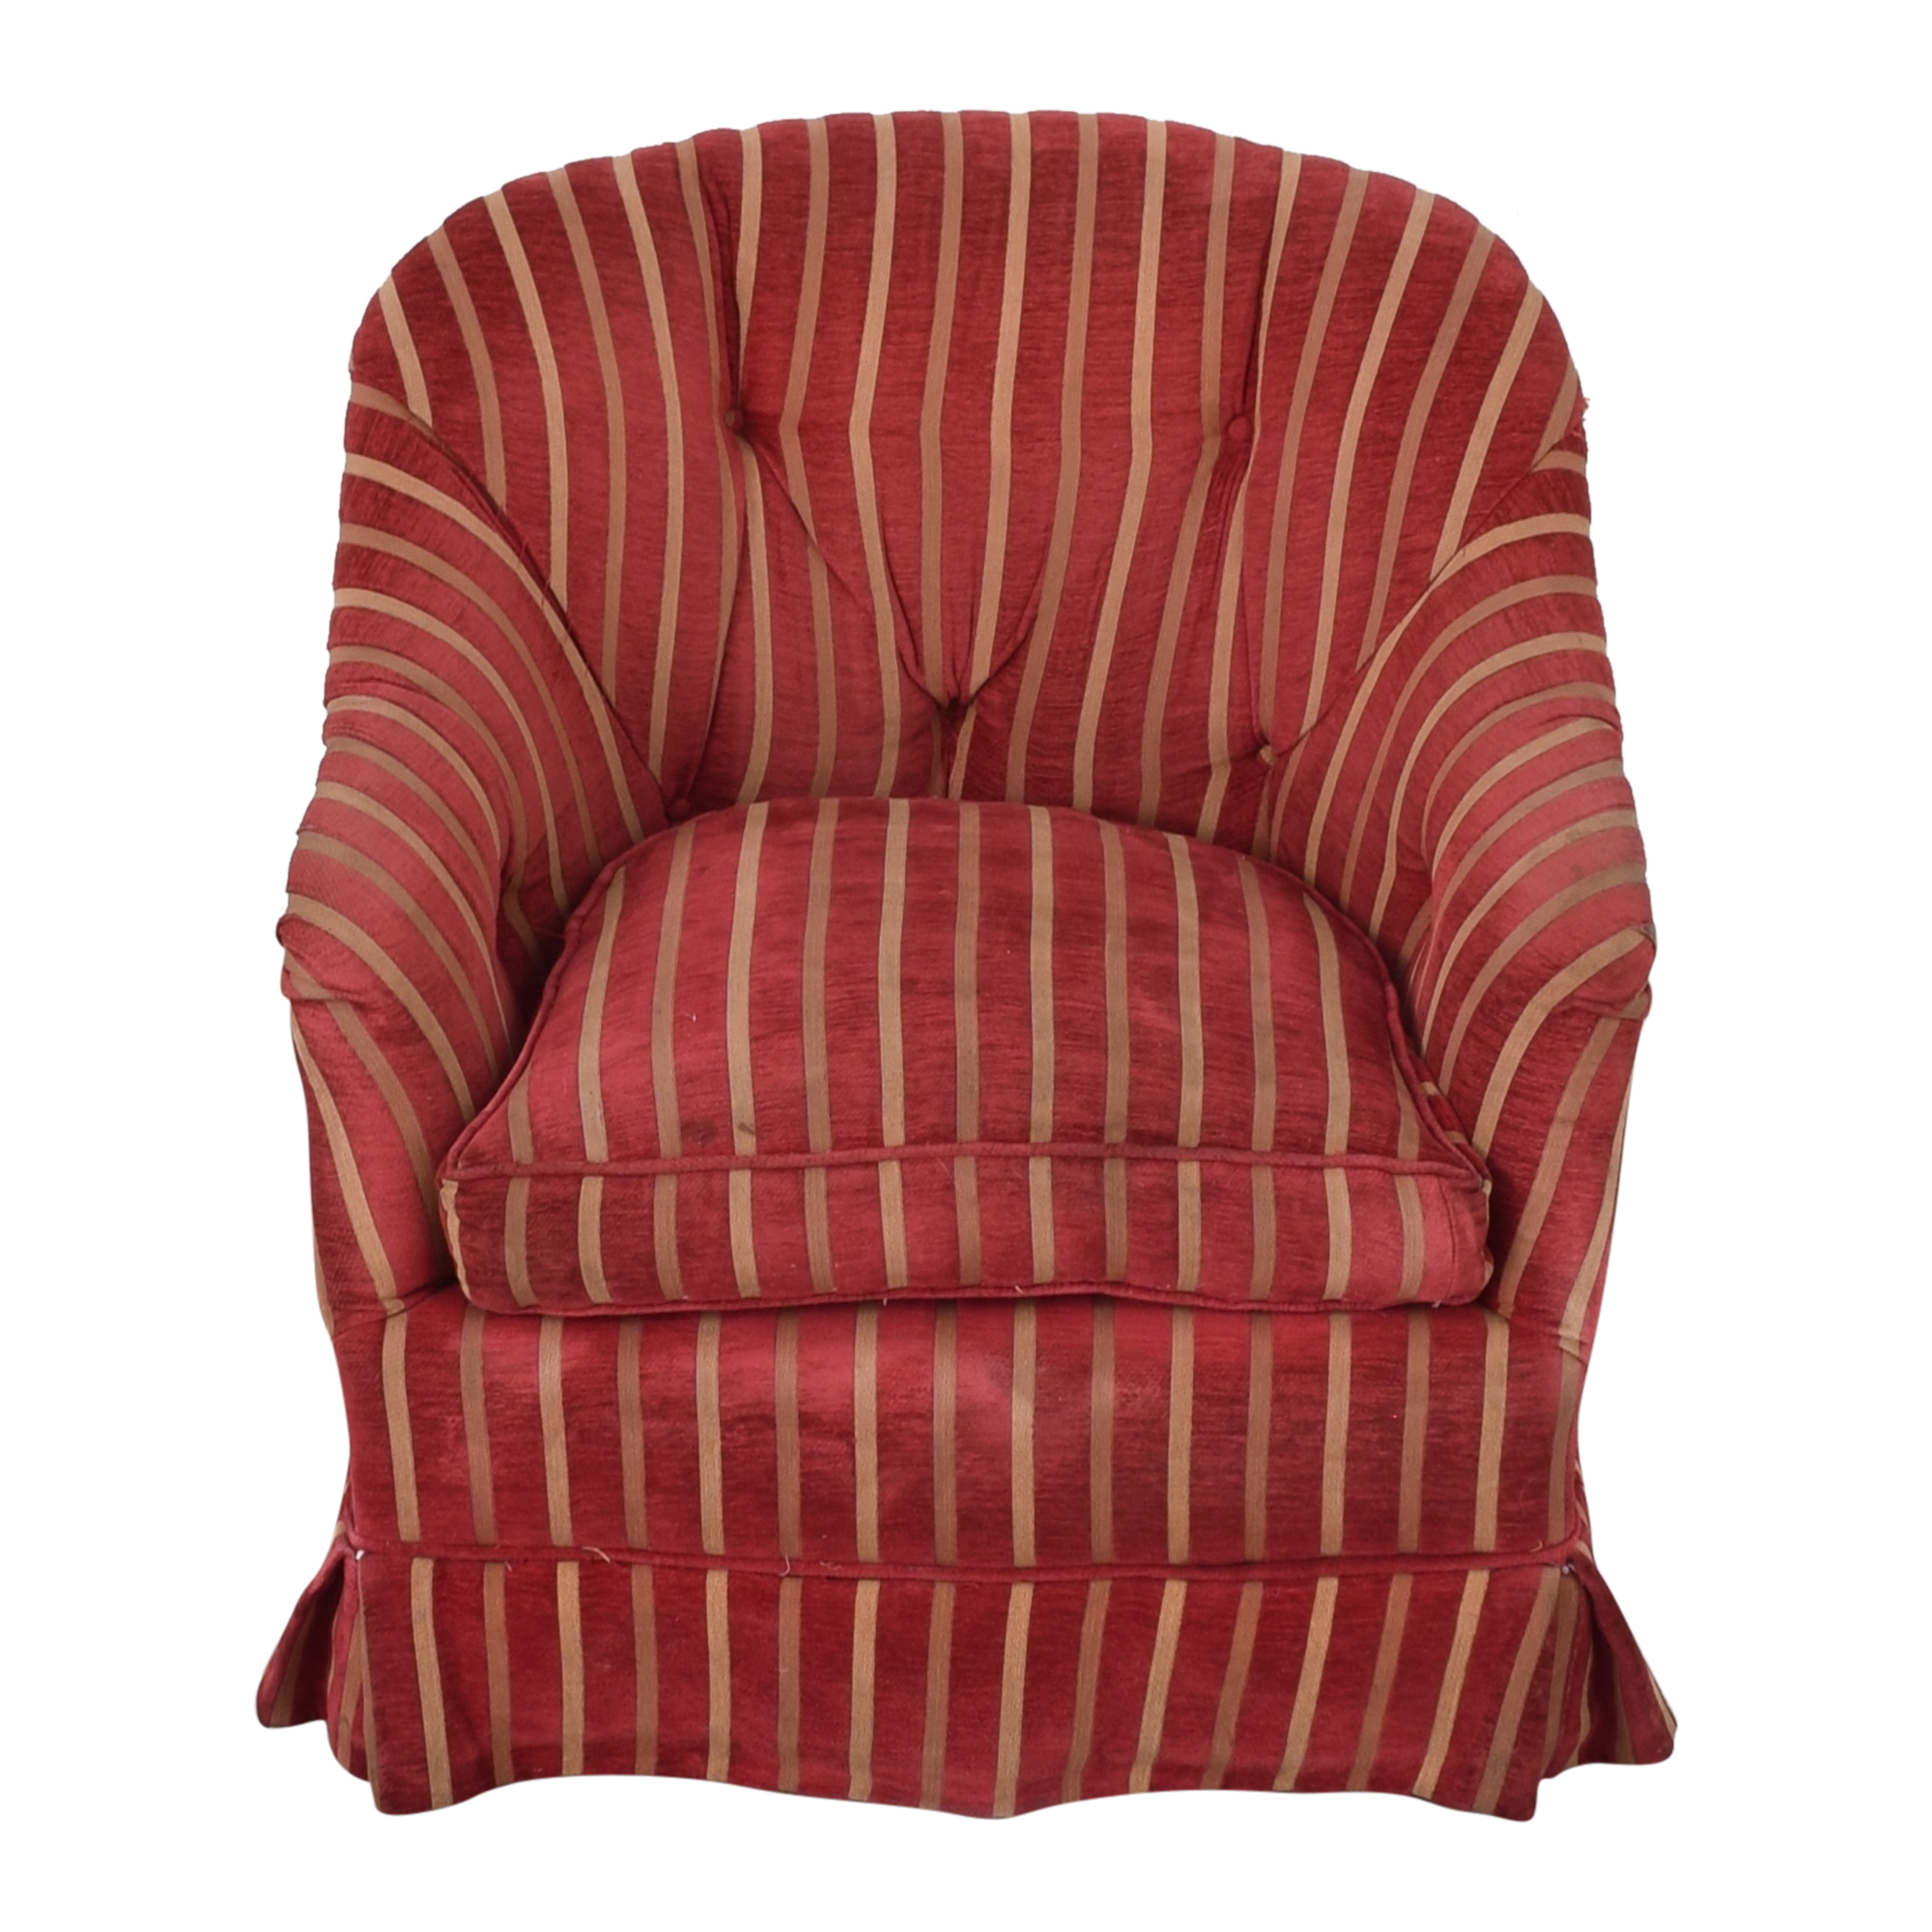 Pin-Tucked Swivel Arm Chair used